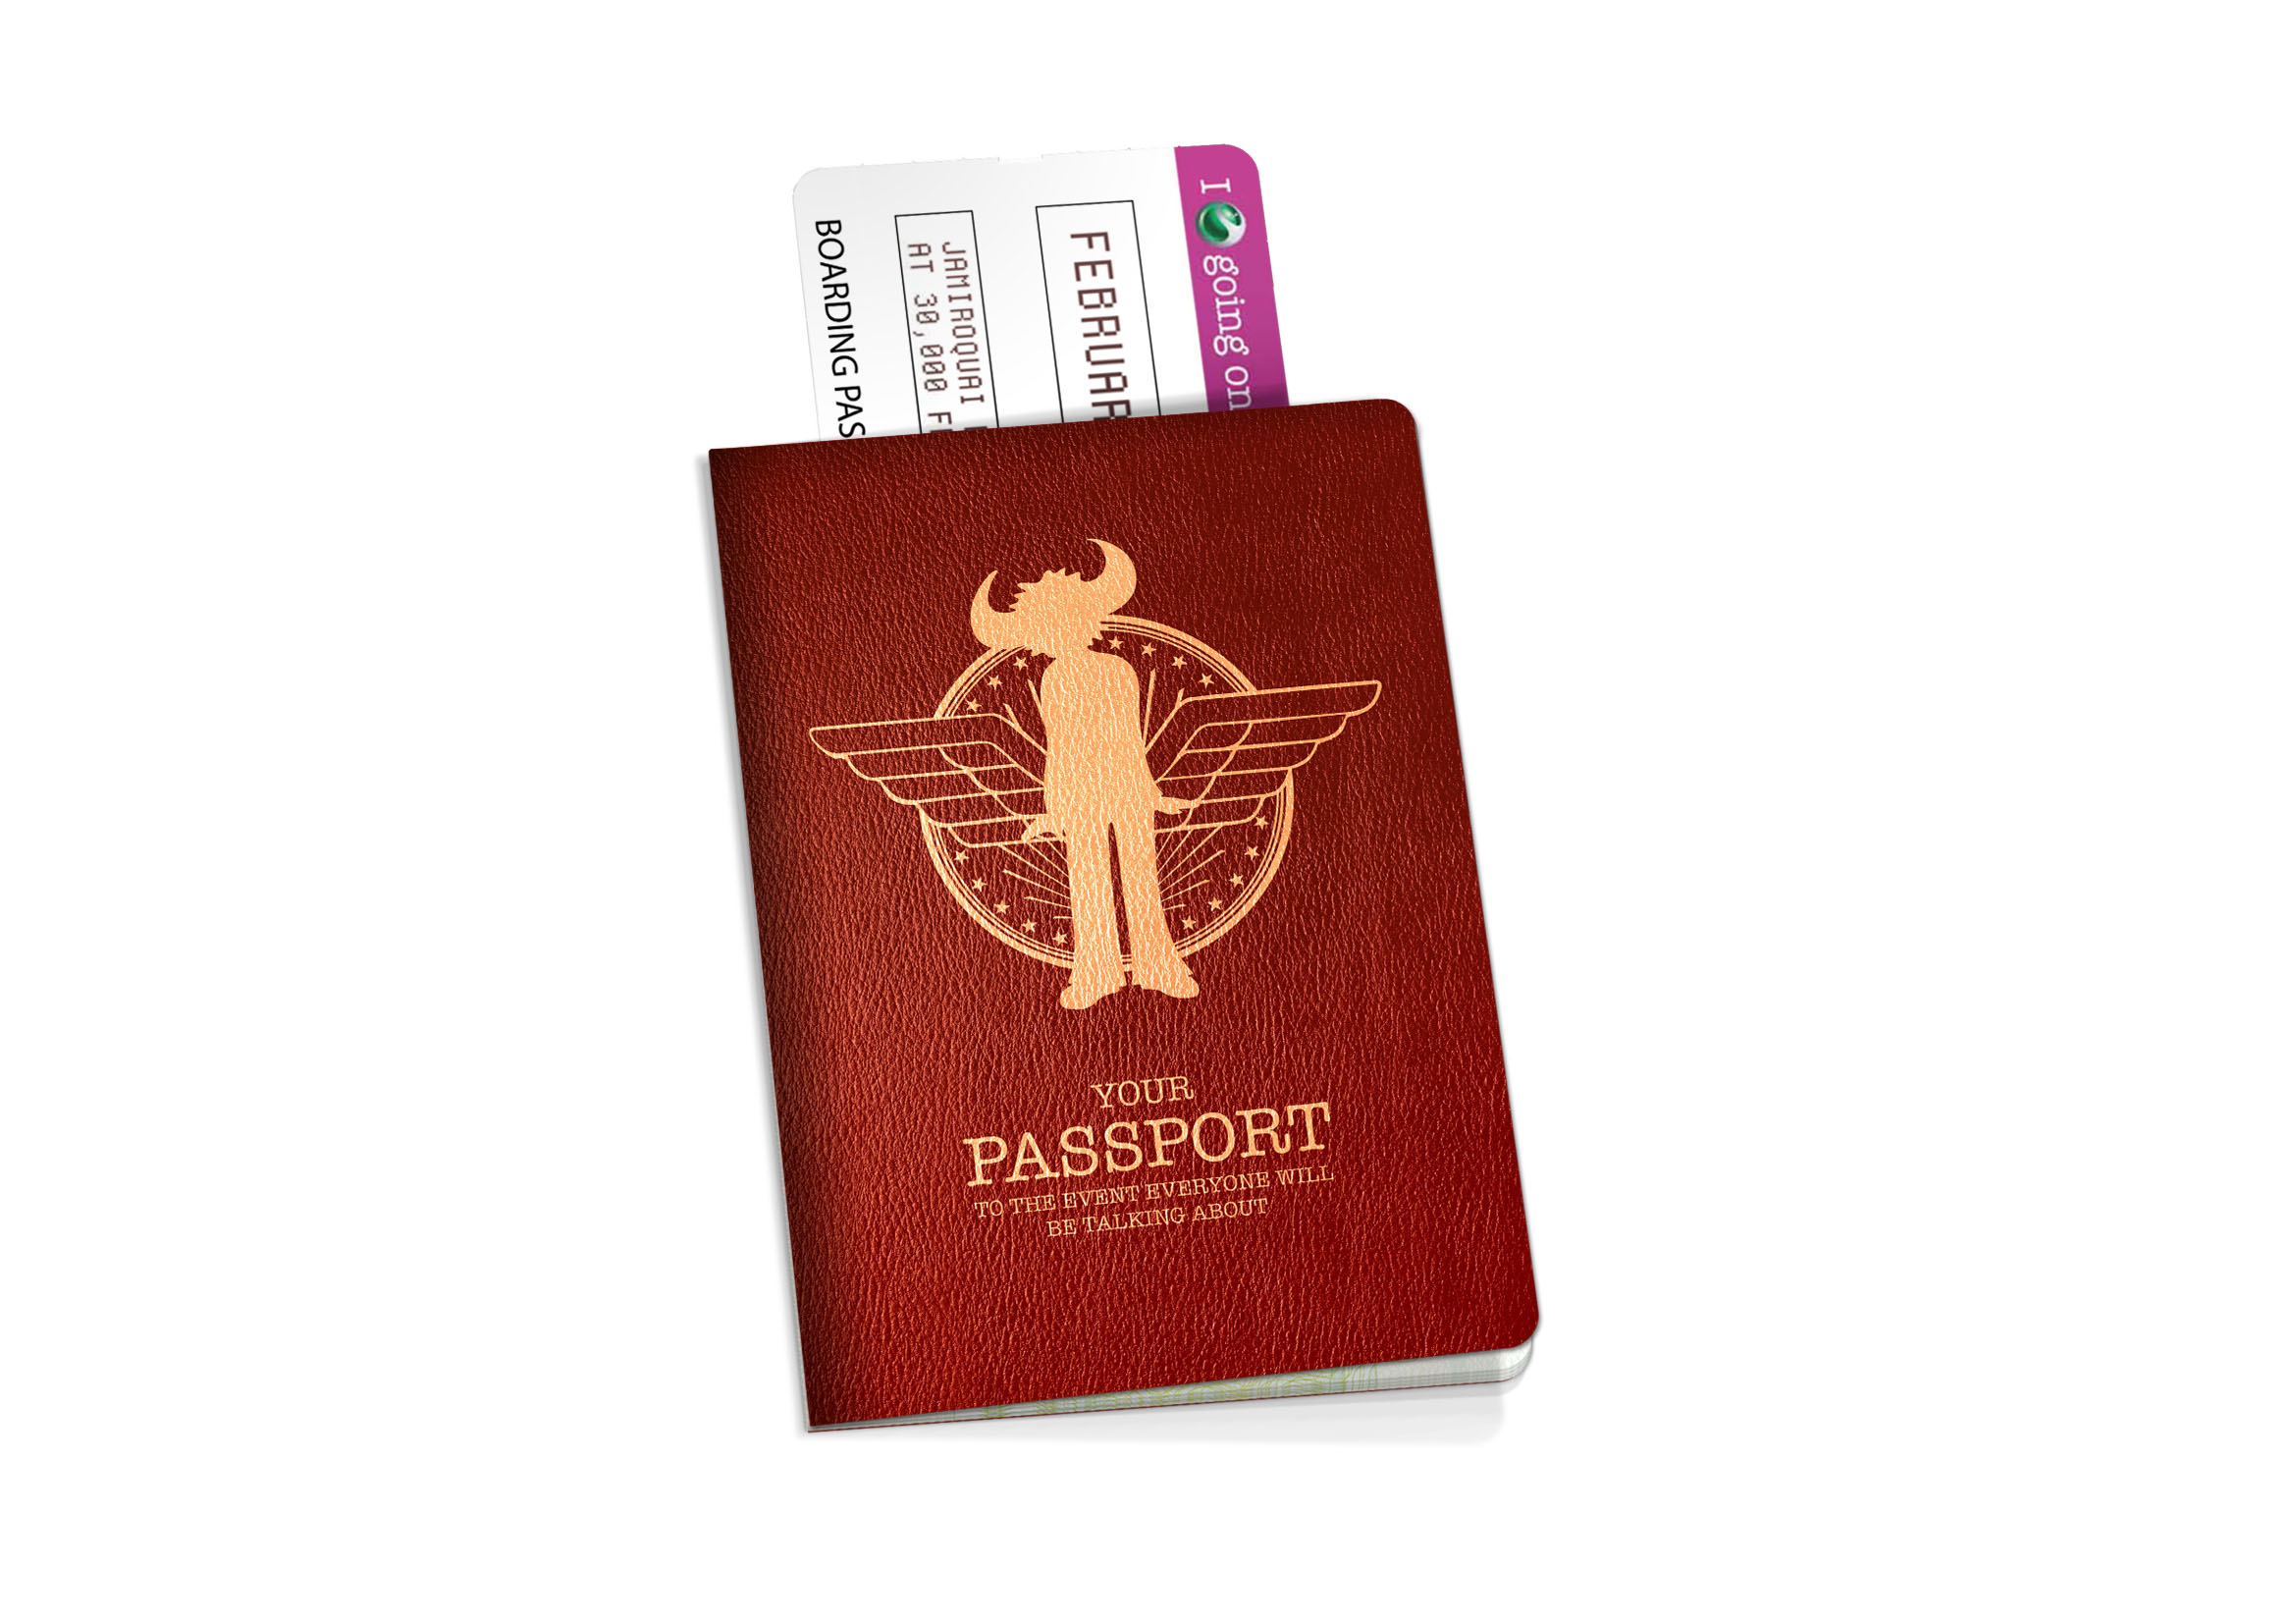 4. PASSPORT (COVER).jpg